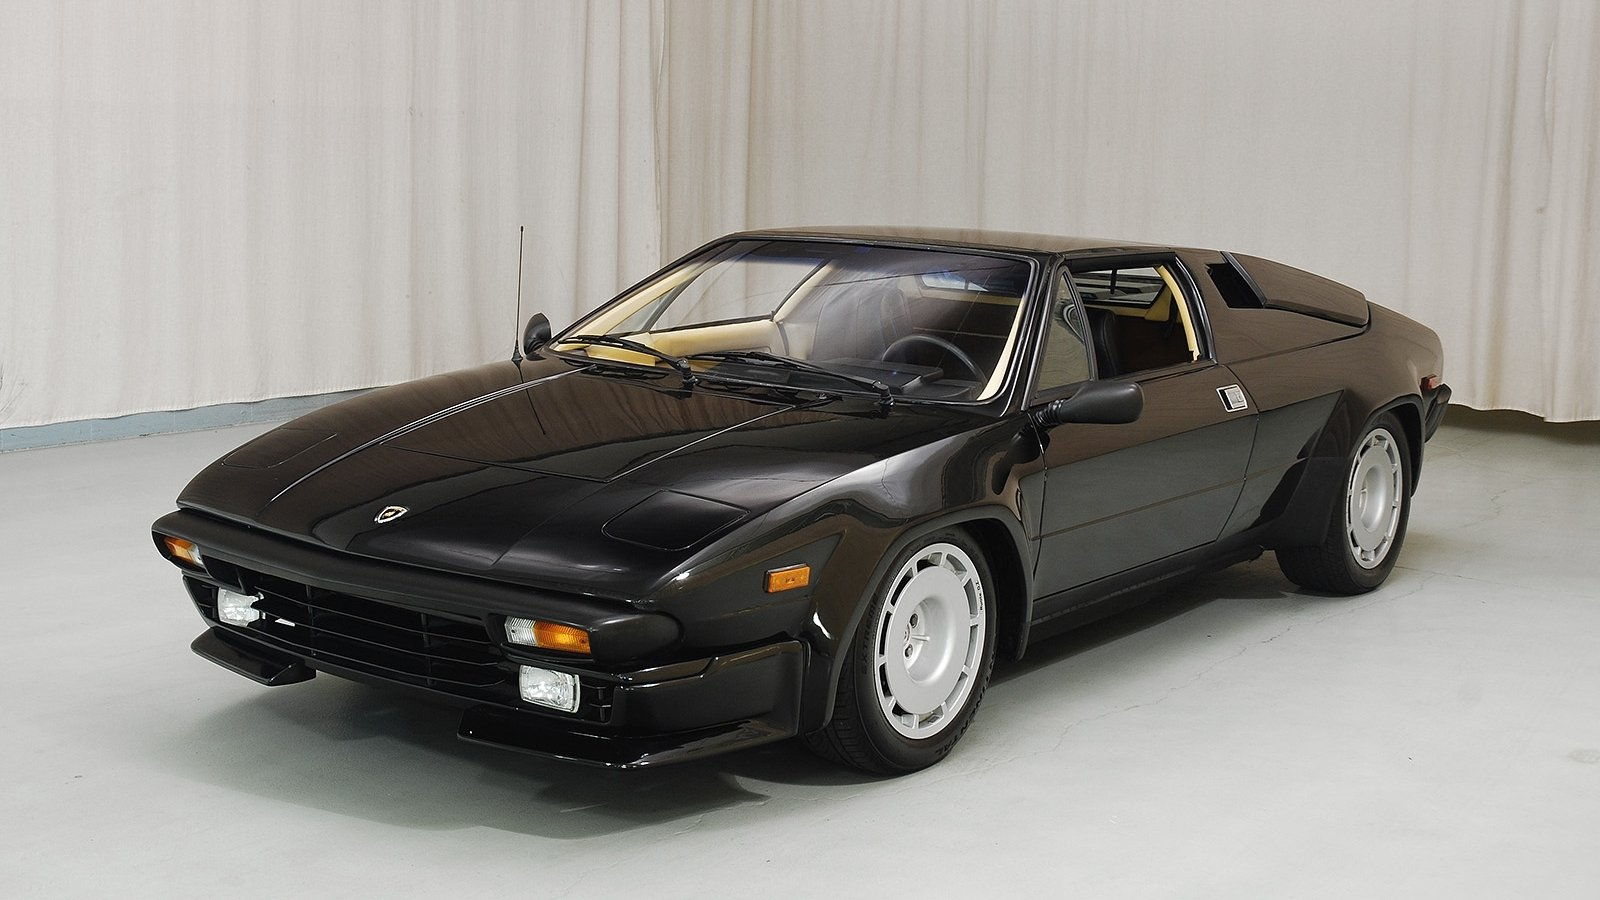 Lamborghini Jalpa Can Be Yours For 115K News Top Speed